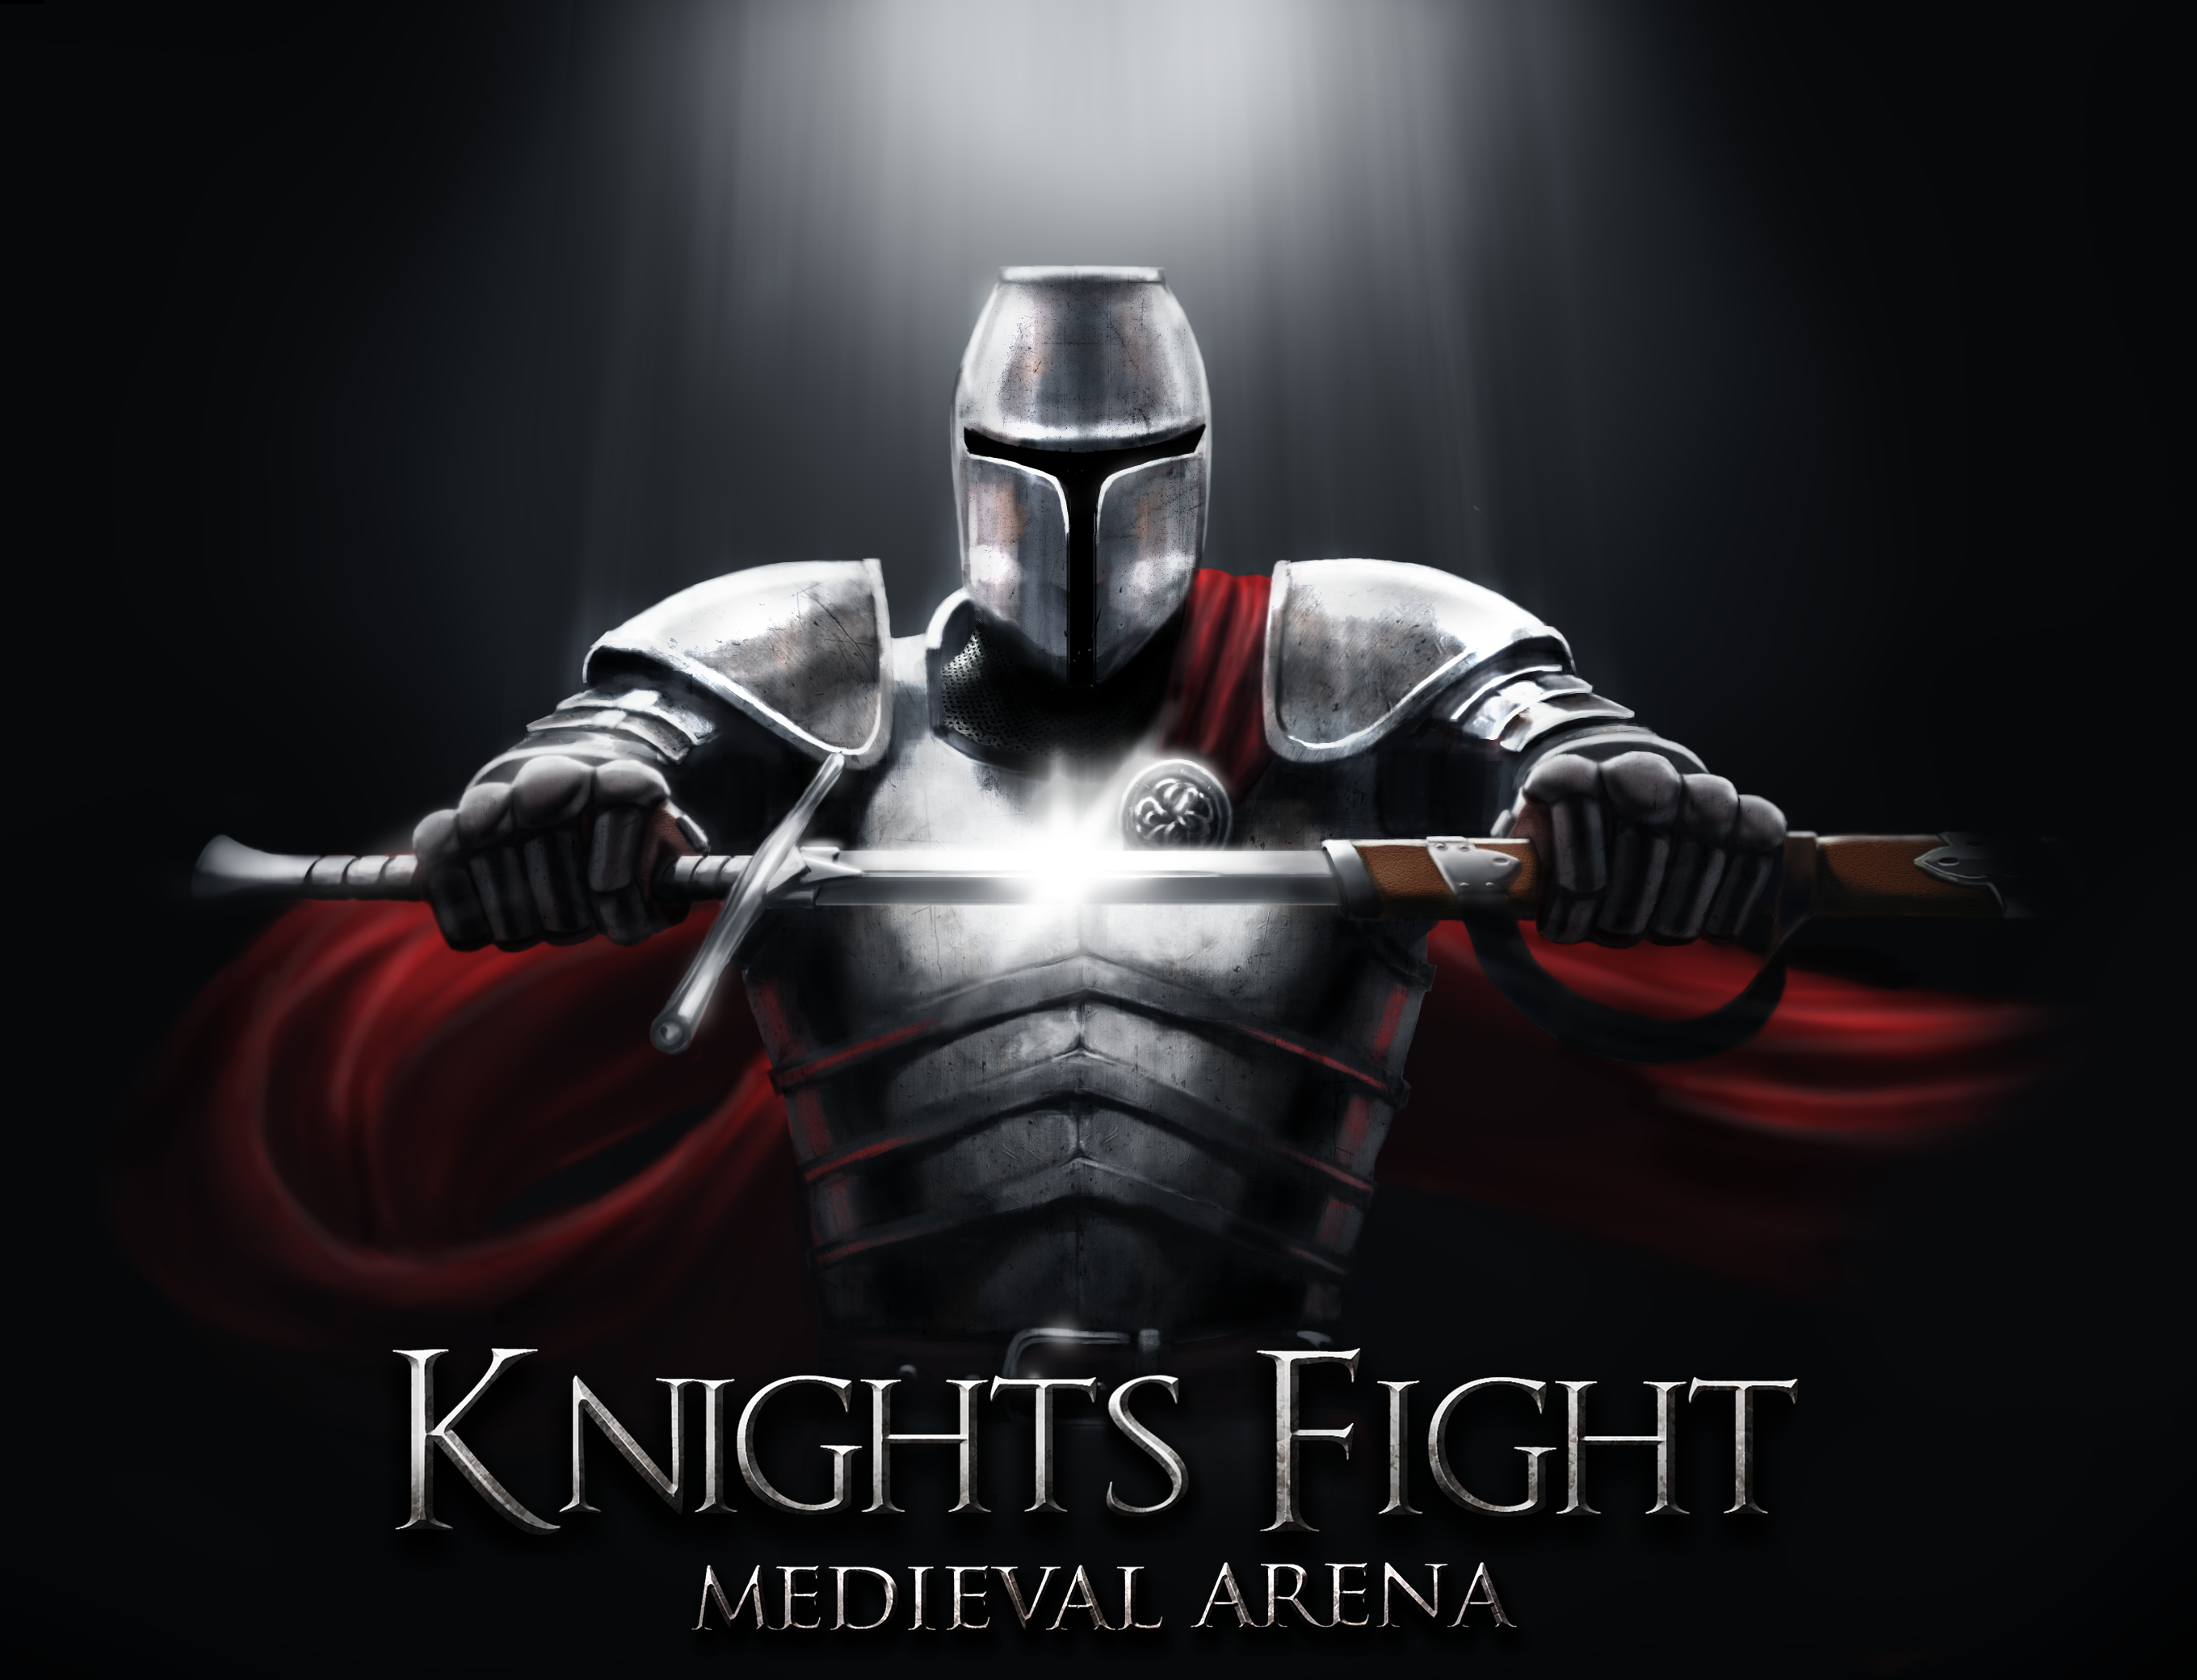 Игра Knights Fight: Medieval Arena вышла в App Store - Изображение 1